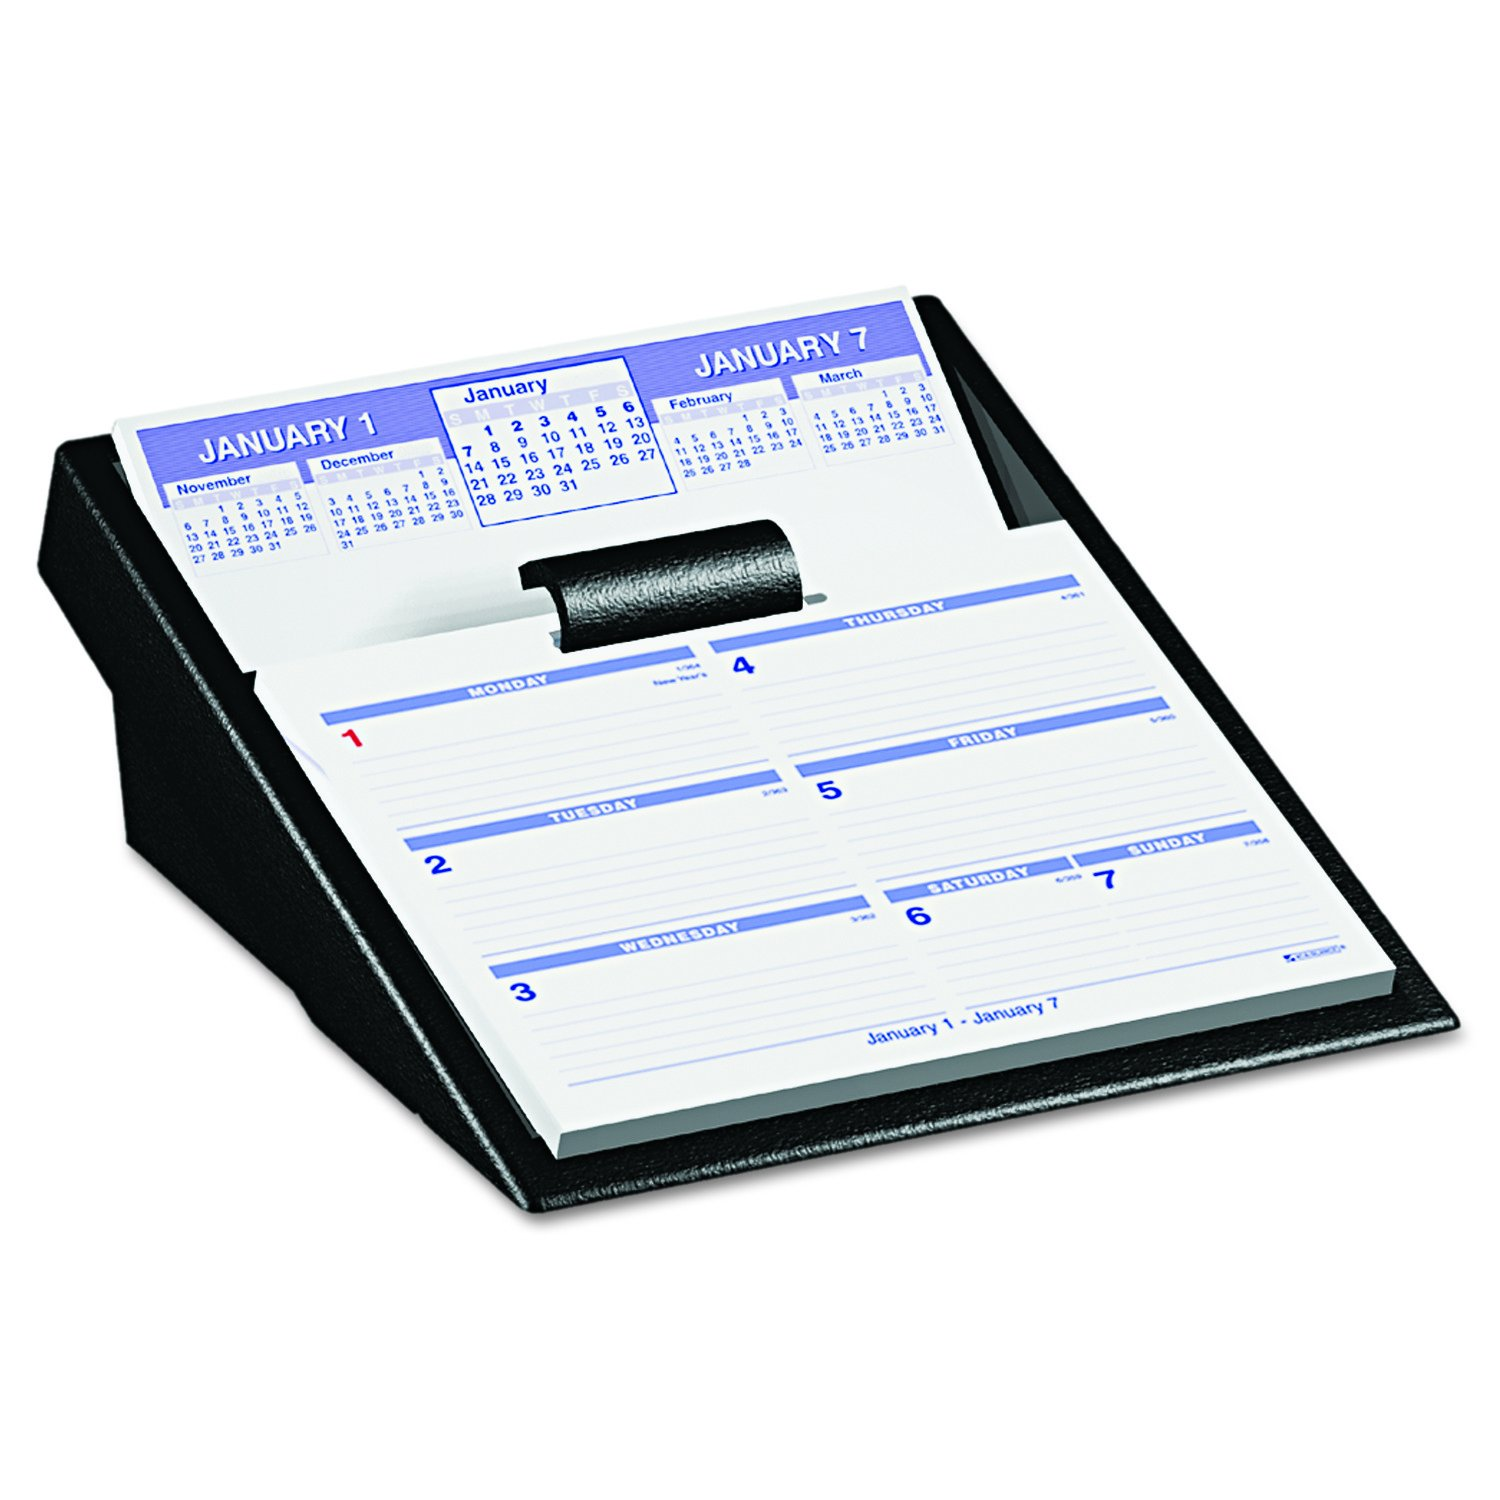 AT-A-GLANCE SW705X50 Flip-A-Week Desk Calendar Refill, 5 5/8 x 7, White, 2016